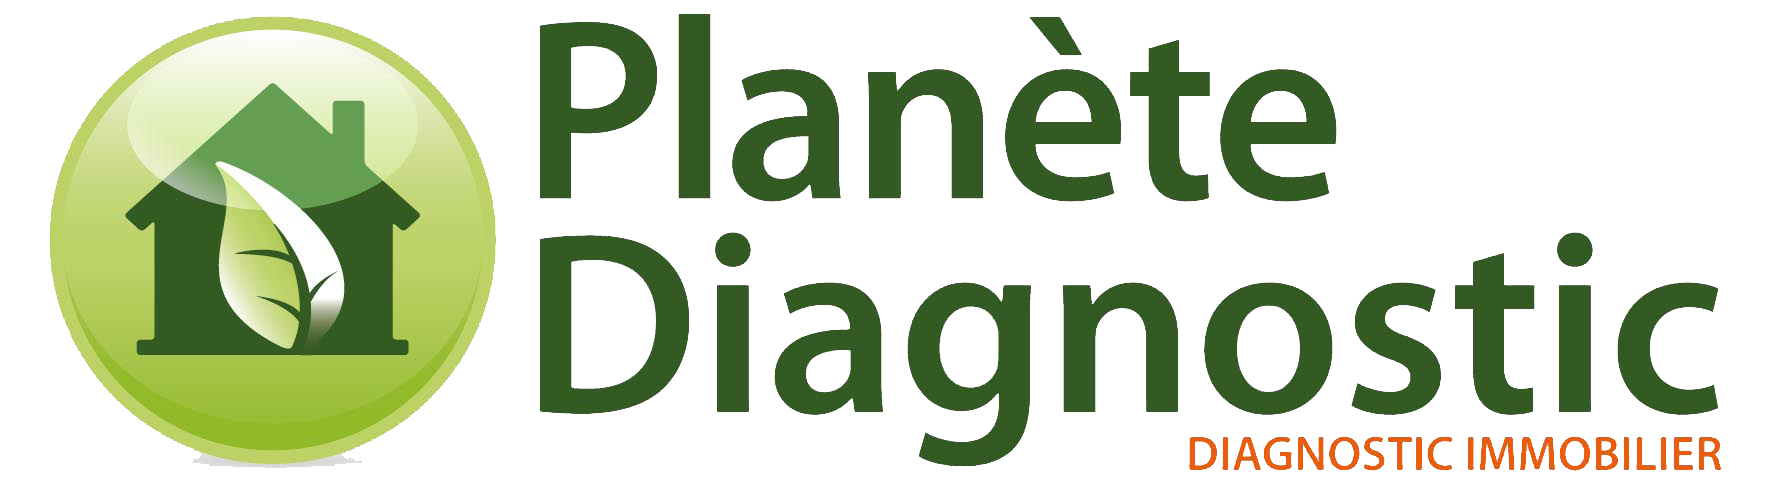 Planete diagnostic